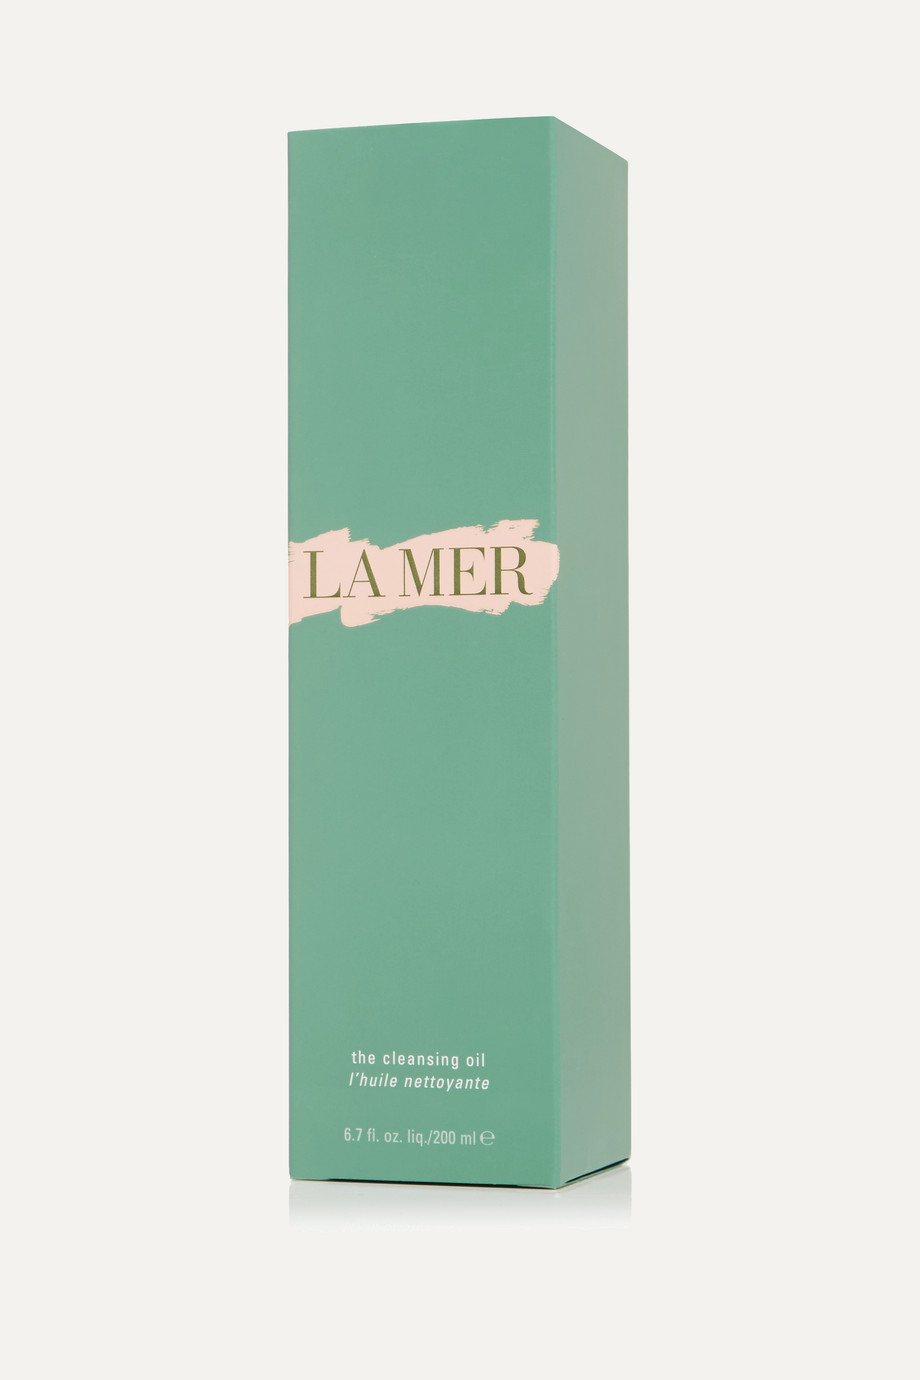 La Mer The Cleansing Oil, 200ml